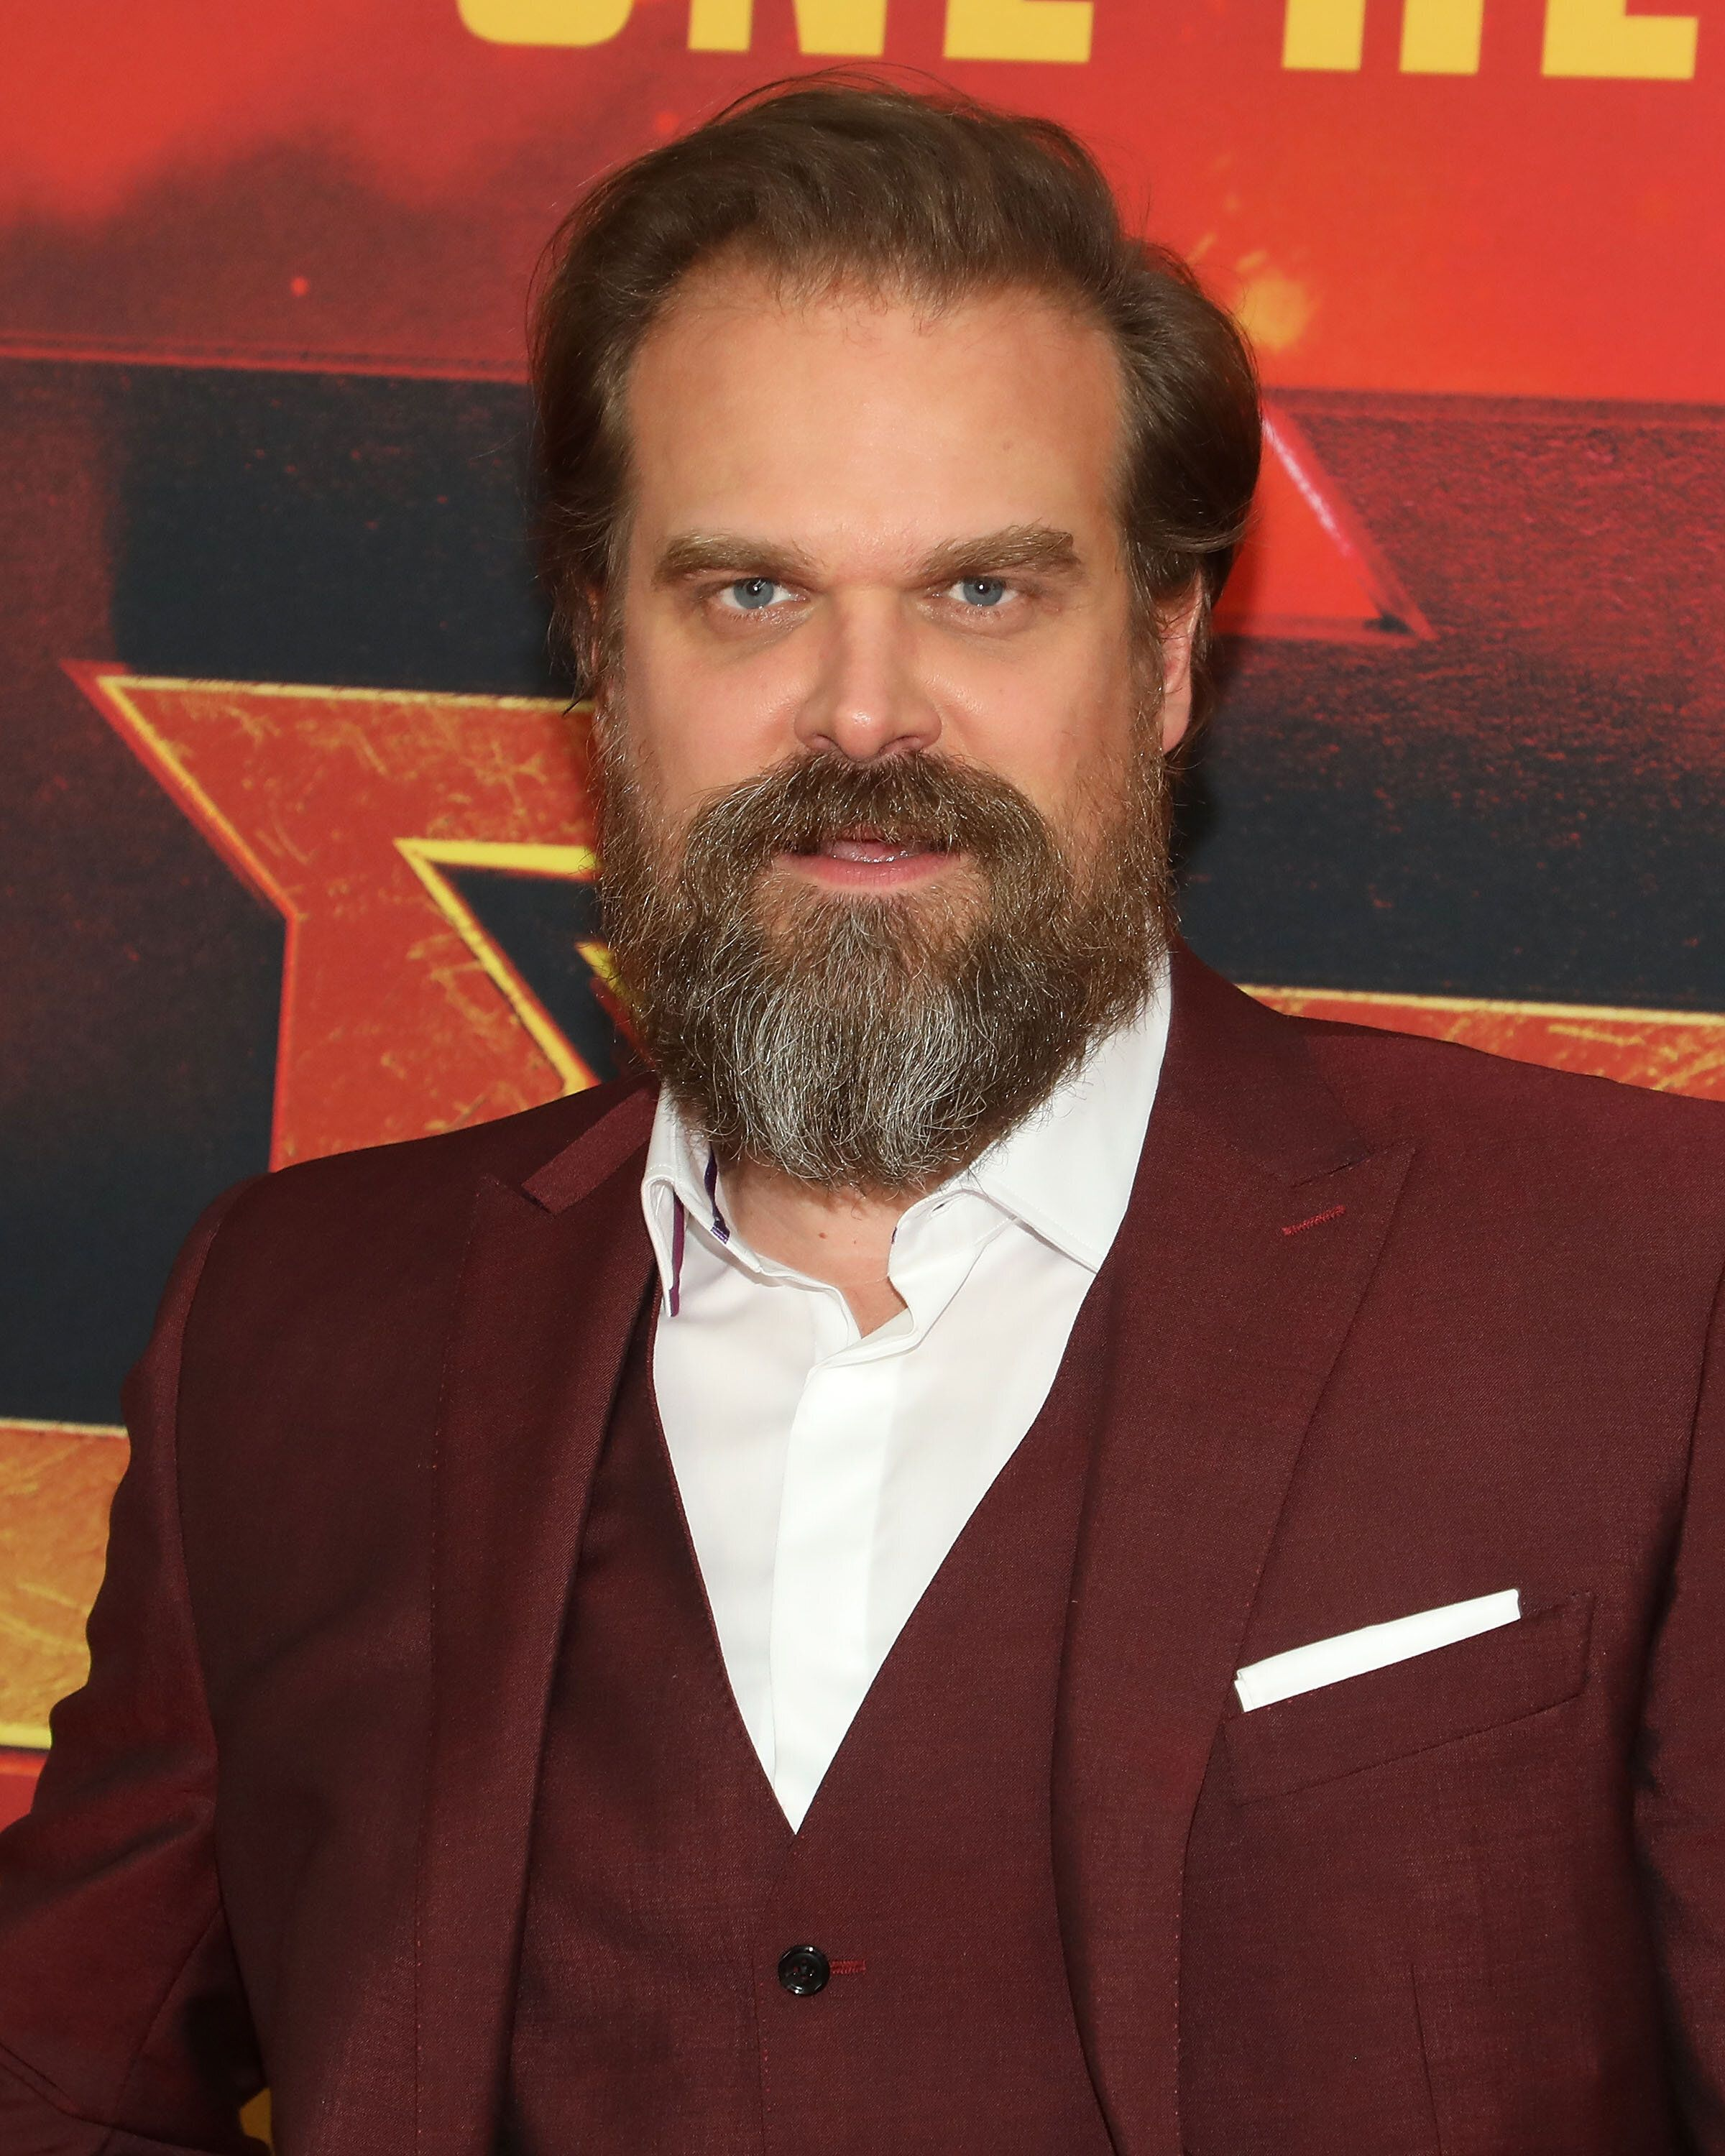 """NEW YORK, NY - APRIL 09: Actor David Harbour attends the New York premiere of """"Hellboy"""" at AMC Lincoln Square Theater on April 9, 2019 in New York City. (Photo by Taylor Hill/WireImage)"""